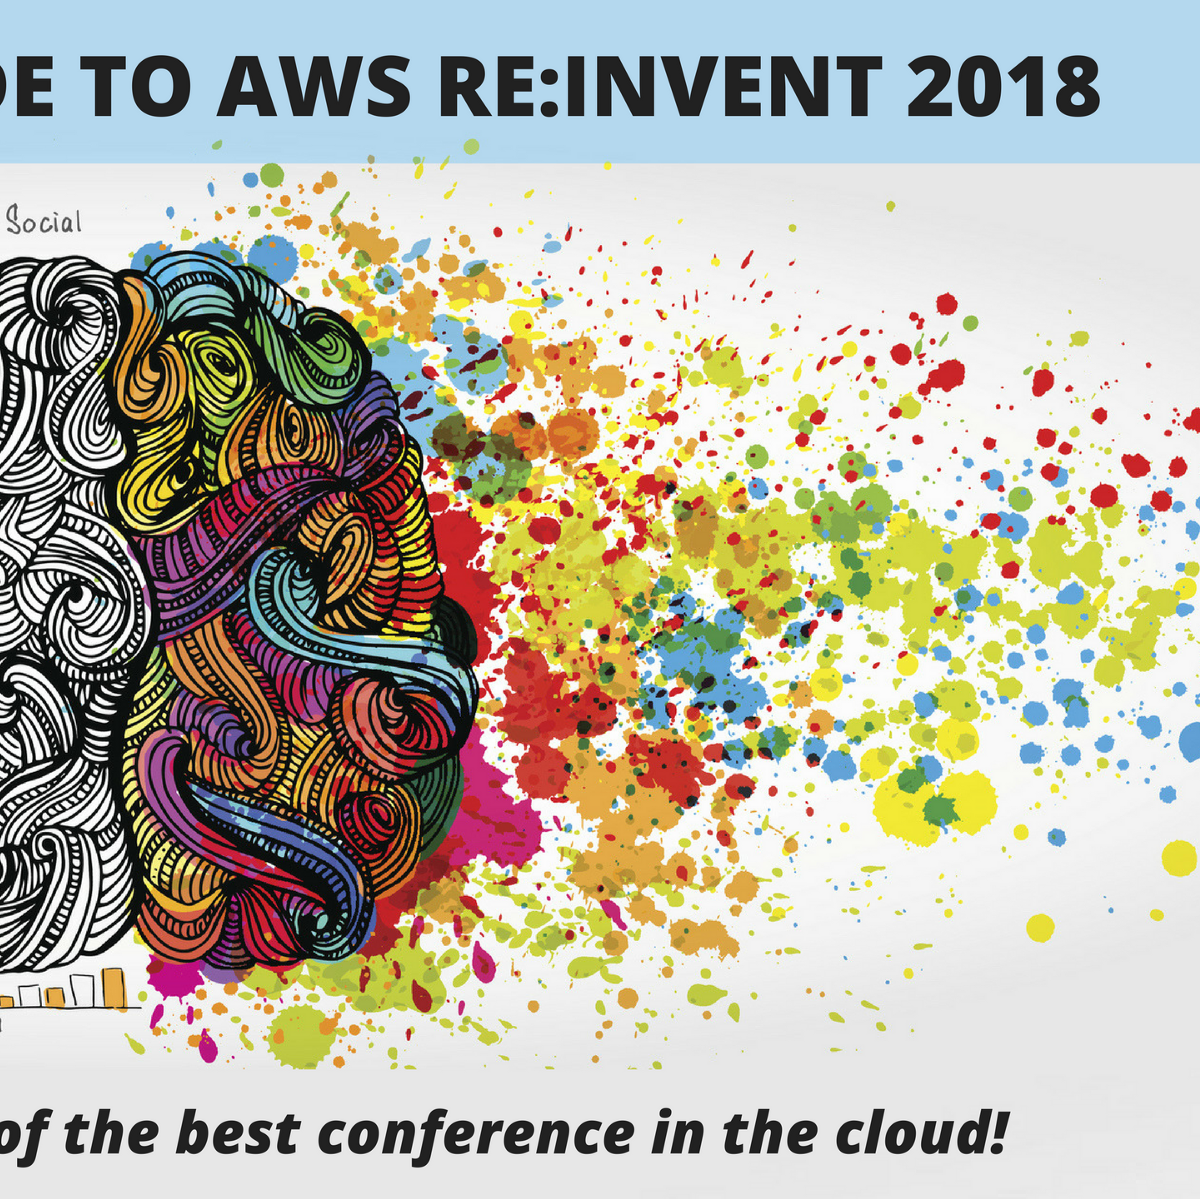 The Ultimate Guide to AWS re:Invent 2018 - A Cloud Guru